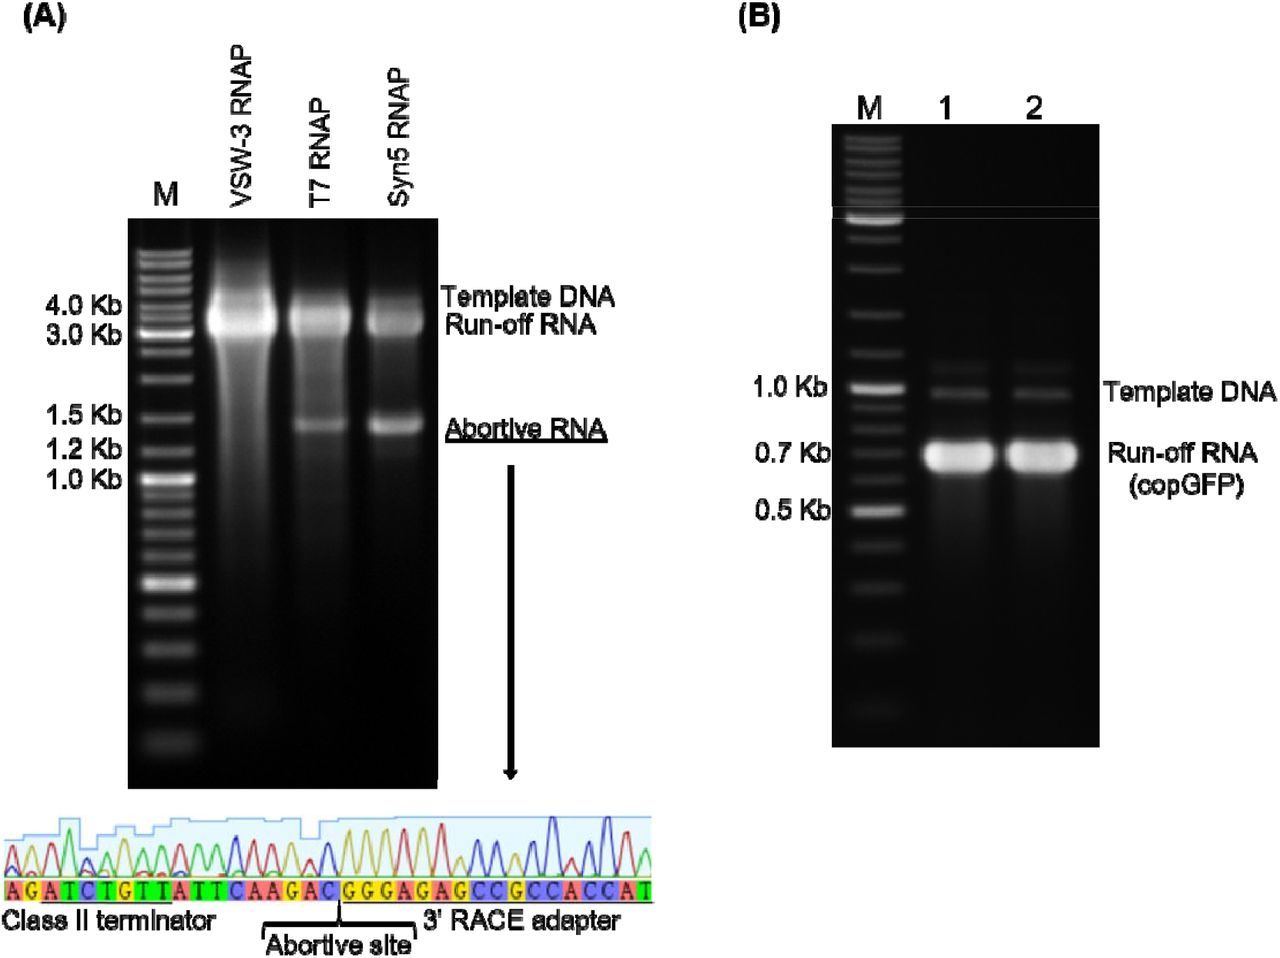 """Response of ssRNAPs to Class II terminator. (A) Using PCR-amplified templates for cas9-RNA IVT, obvious abortive RNA transcripts were observed for T7 RNAP and Syn5 RNAP but not VSW-3 RNAP (top gel). 3'-RACE revealed that the T7 RNAP transcription was terminated 9 nt downstream of a Class II terminator """"ATCTGTT"""" (bottom sequencing result). (B) VSW-3 RNAP IVT was not terminated (no additional bands comparing lane 2 with lane 1) when a Class II terminator """"ATCTGTT"""" was inserted into the middle of the copGFP RNA coding sequence."""